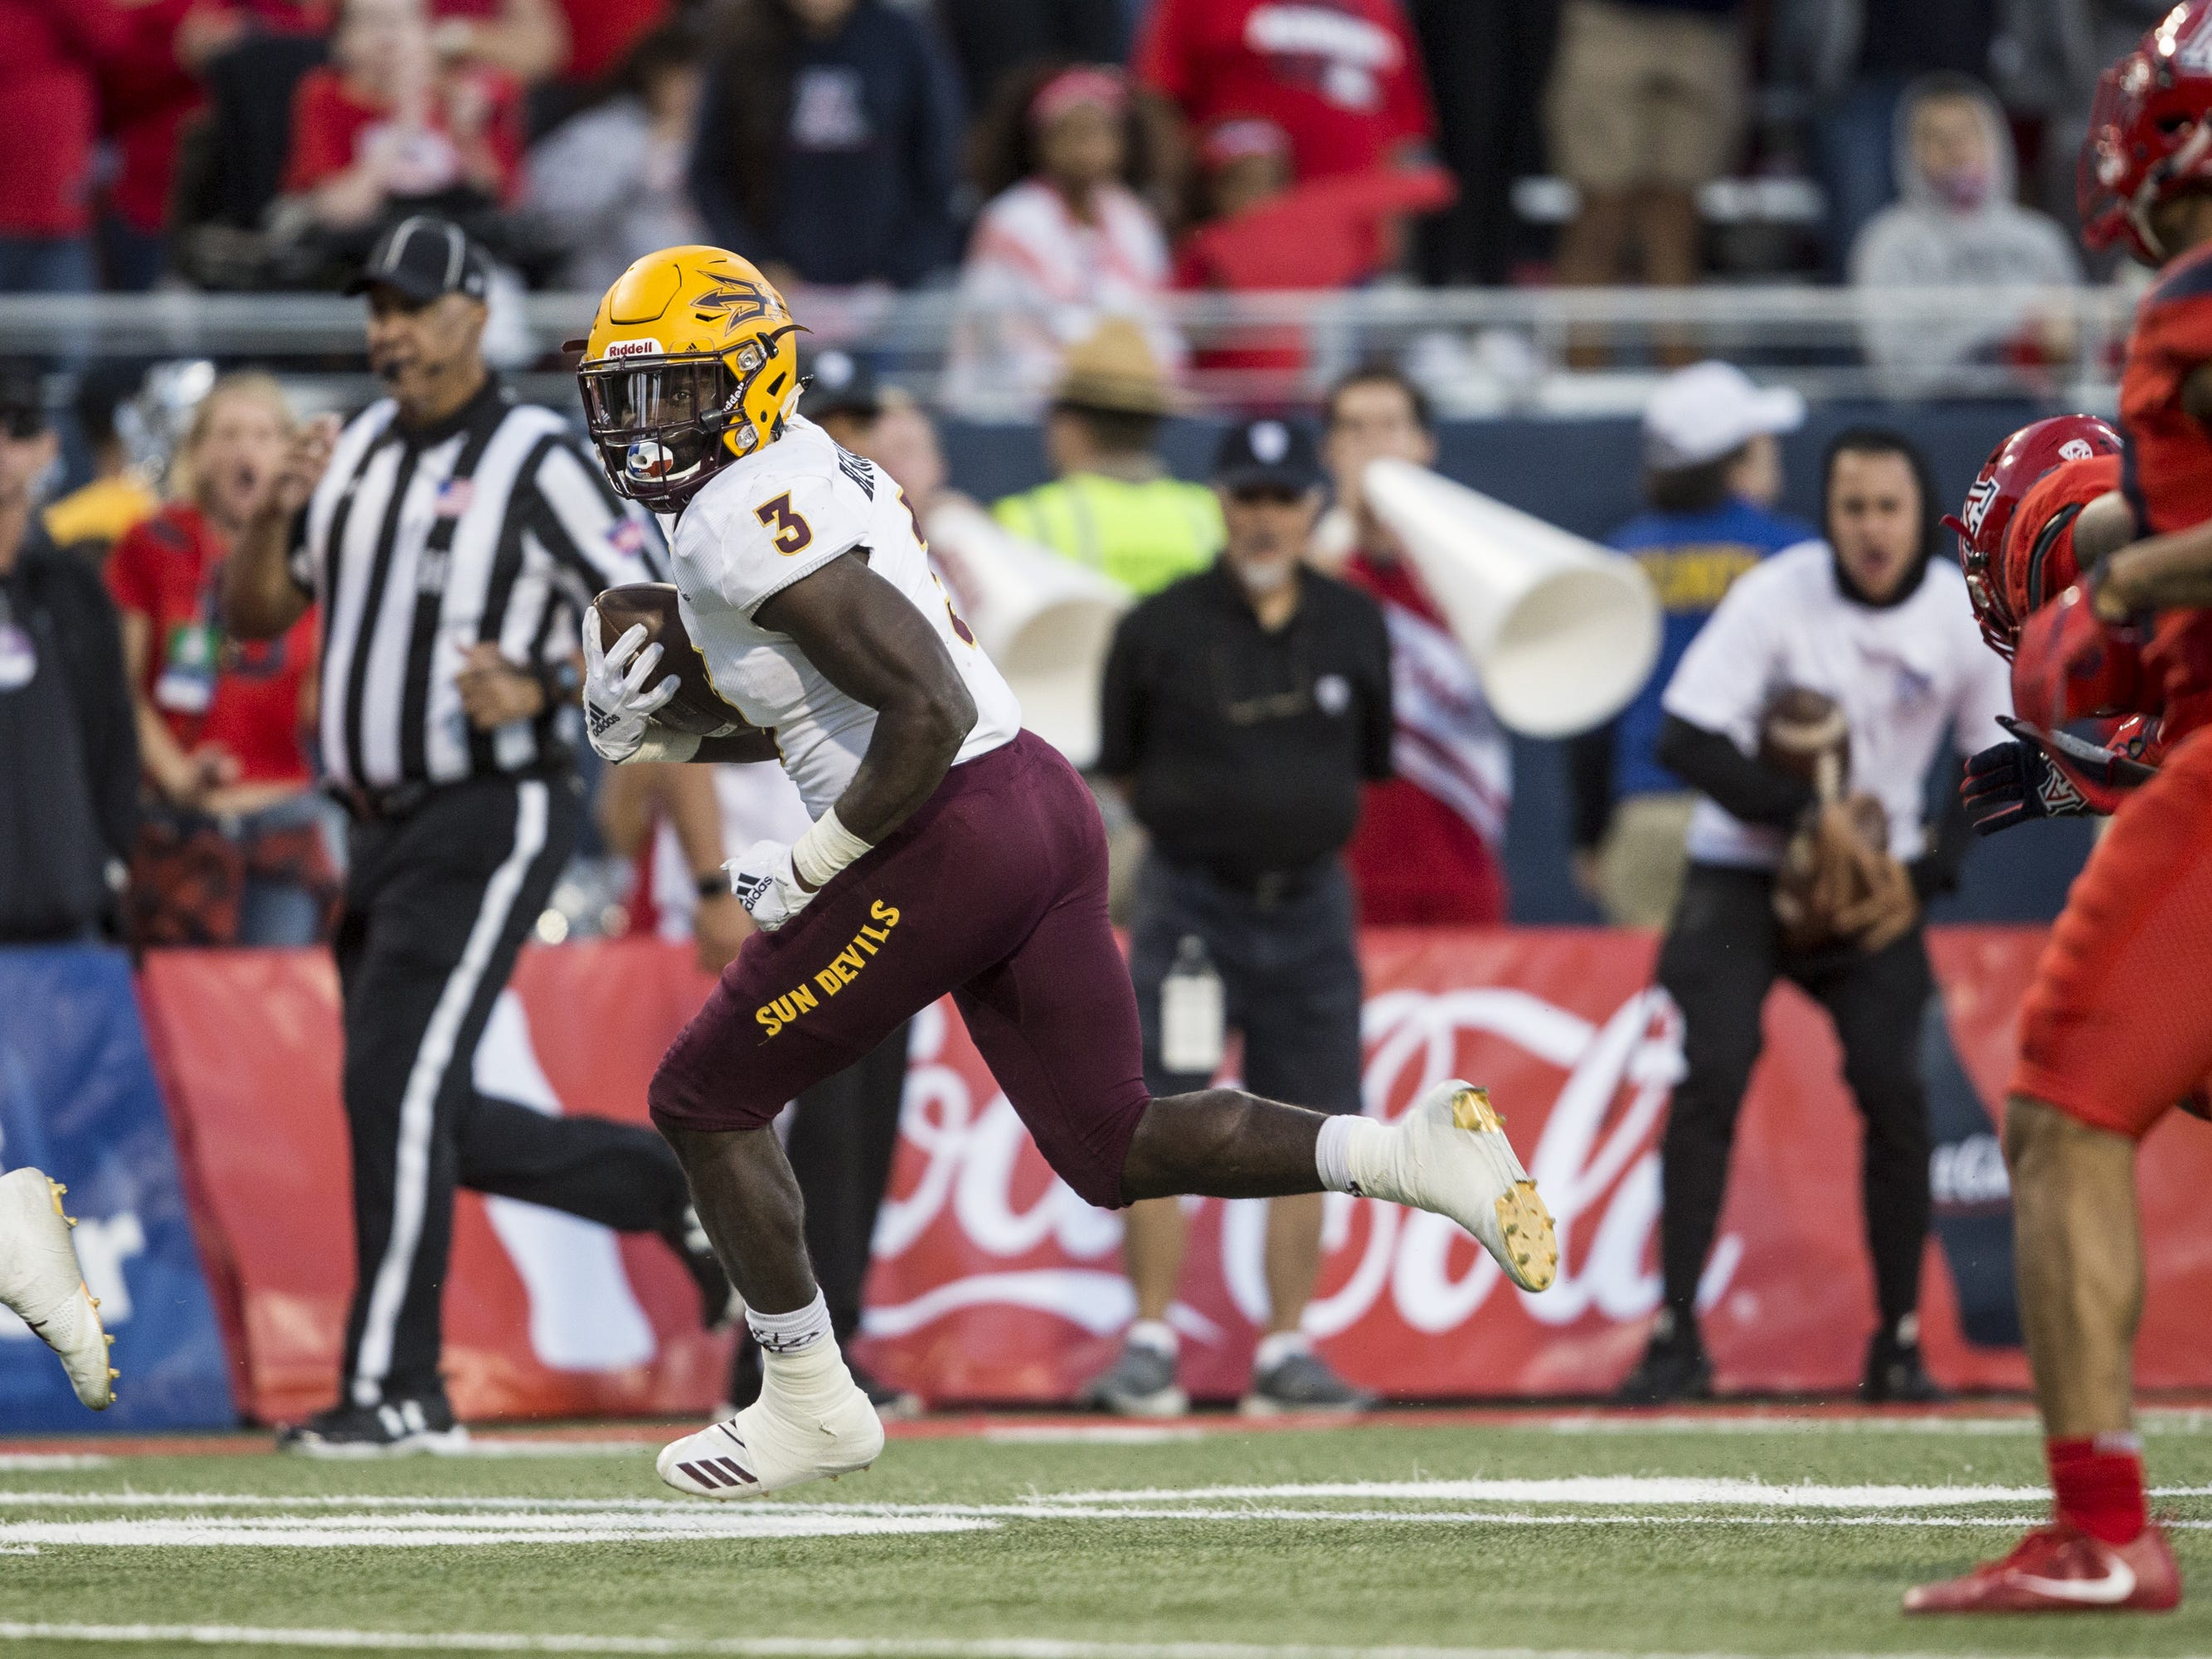 Arizona State's Eno Benjamin rushes for the game-winning touchdown against Arizona during the second half of the Territorial Cup on Saturday, Nov. 24, 2018, at Arizona Stadium in Tucson, Ariz. Arizona State won, 41-40.